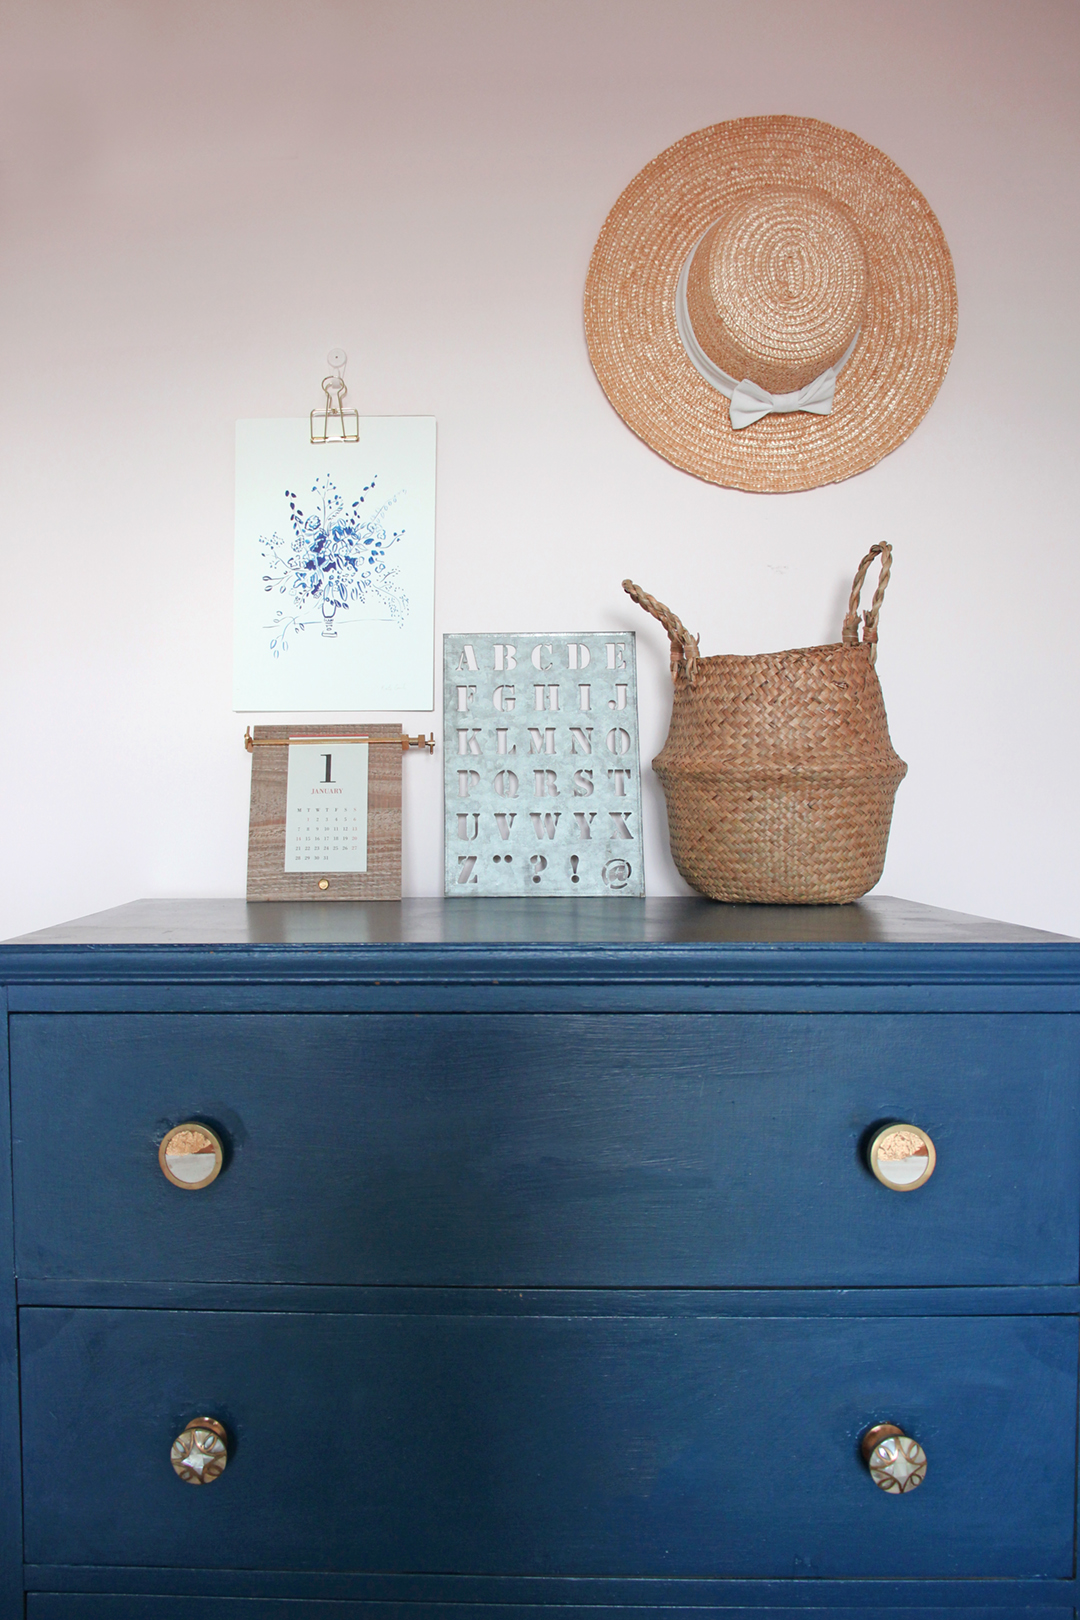 Nancy-Straughan-Interior-Stylist-Blog-Get-your-home-ready-for-spring-stying.jpg